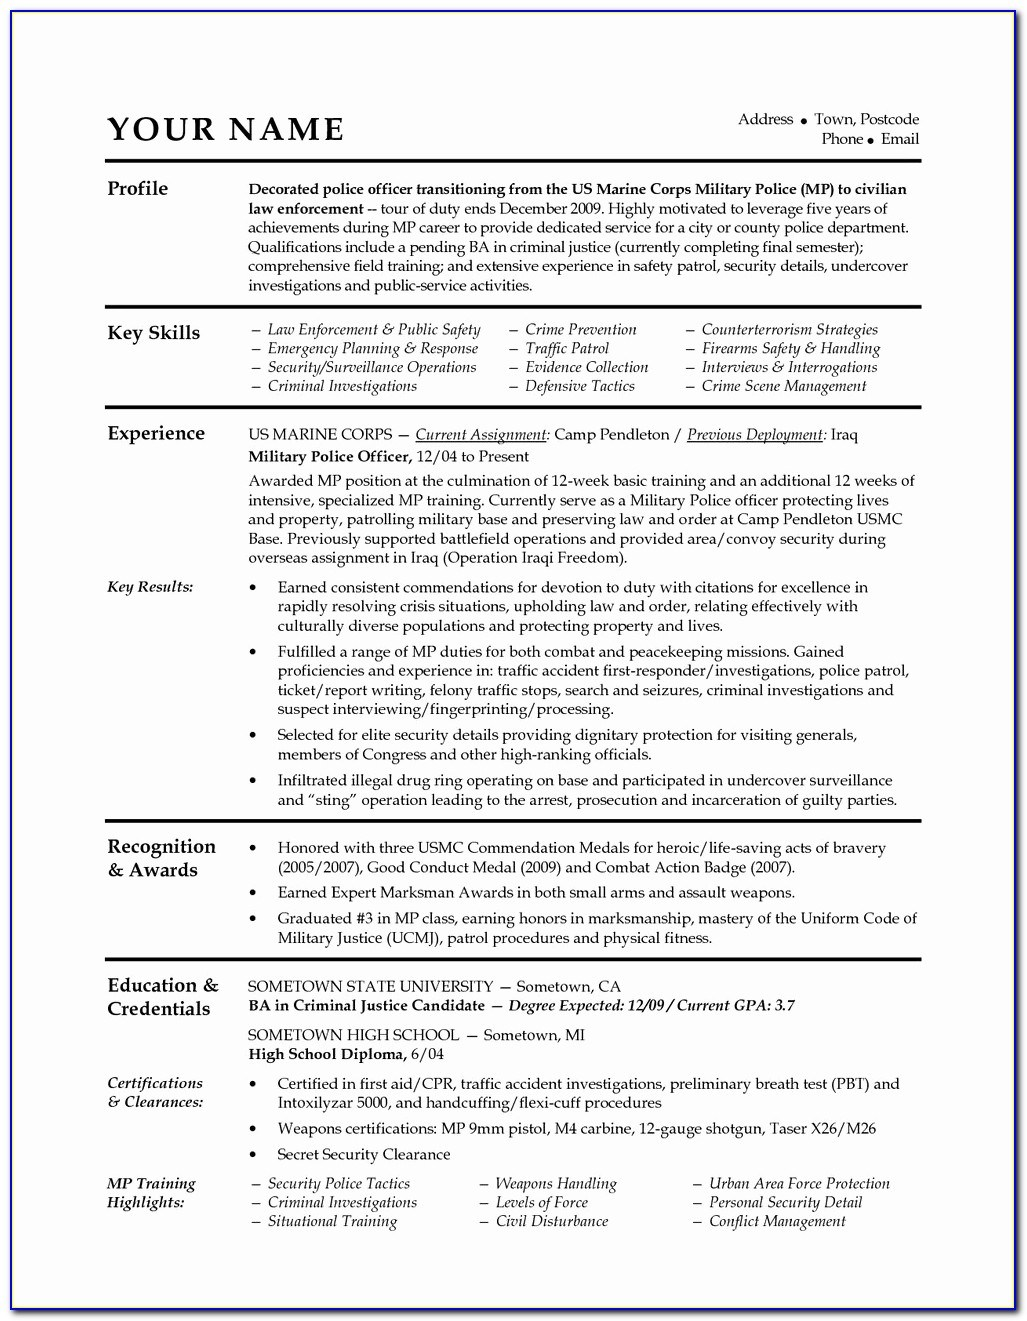 of military resume writing vincegray2014 to civilian services companies citrix xenapp Resume Military To Civilian Resume Writing Services